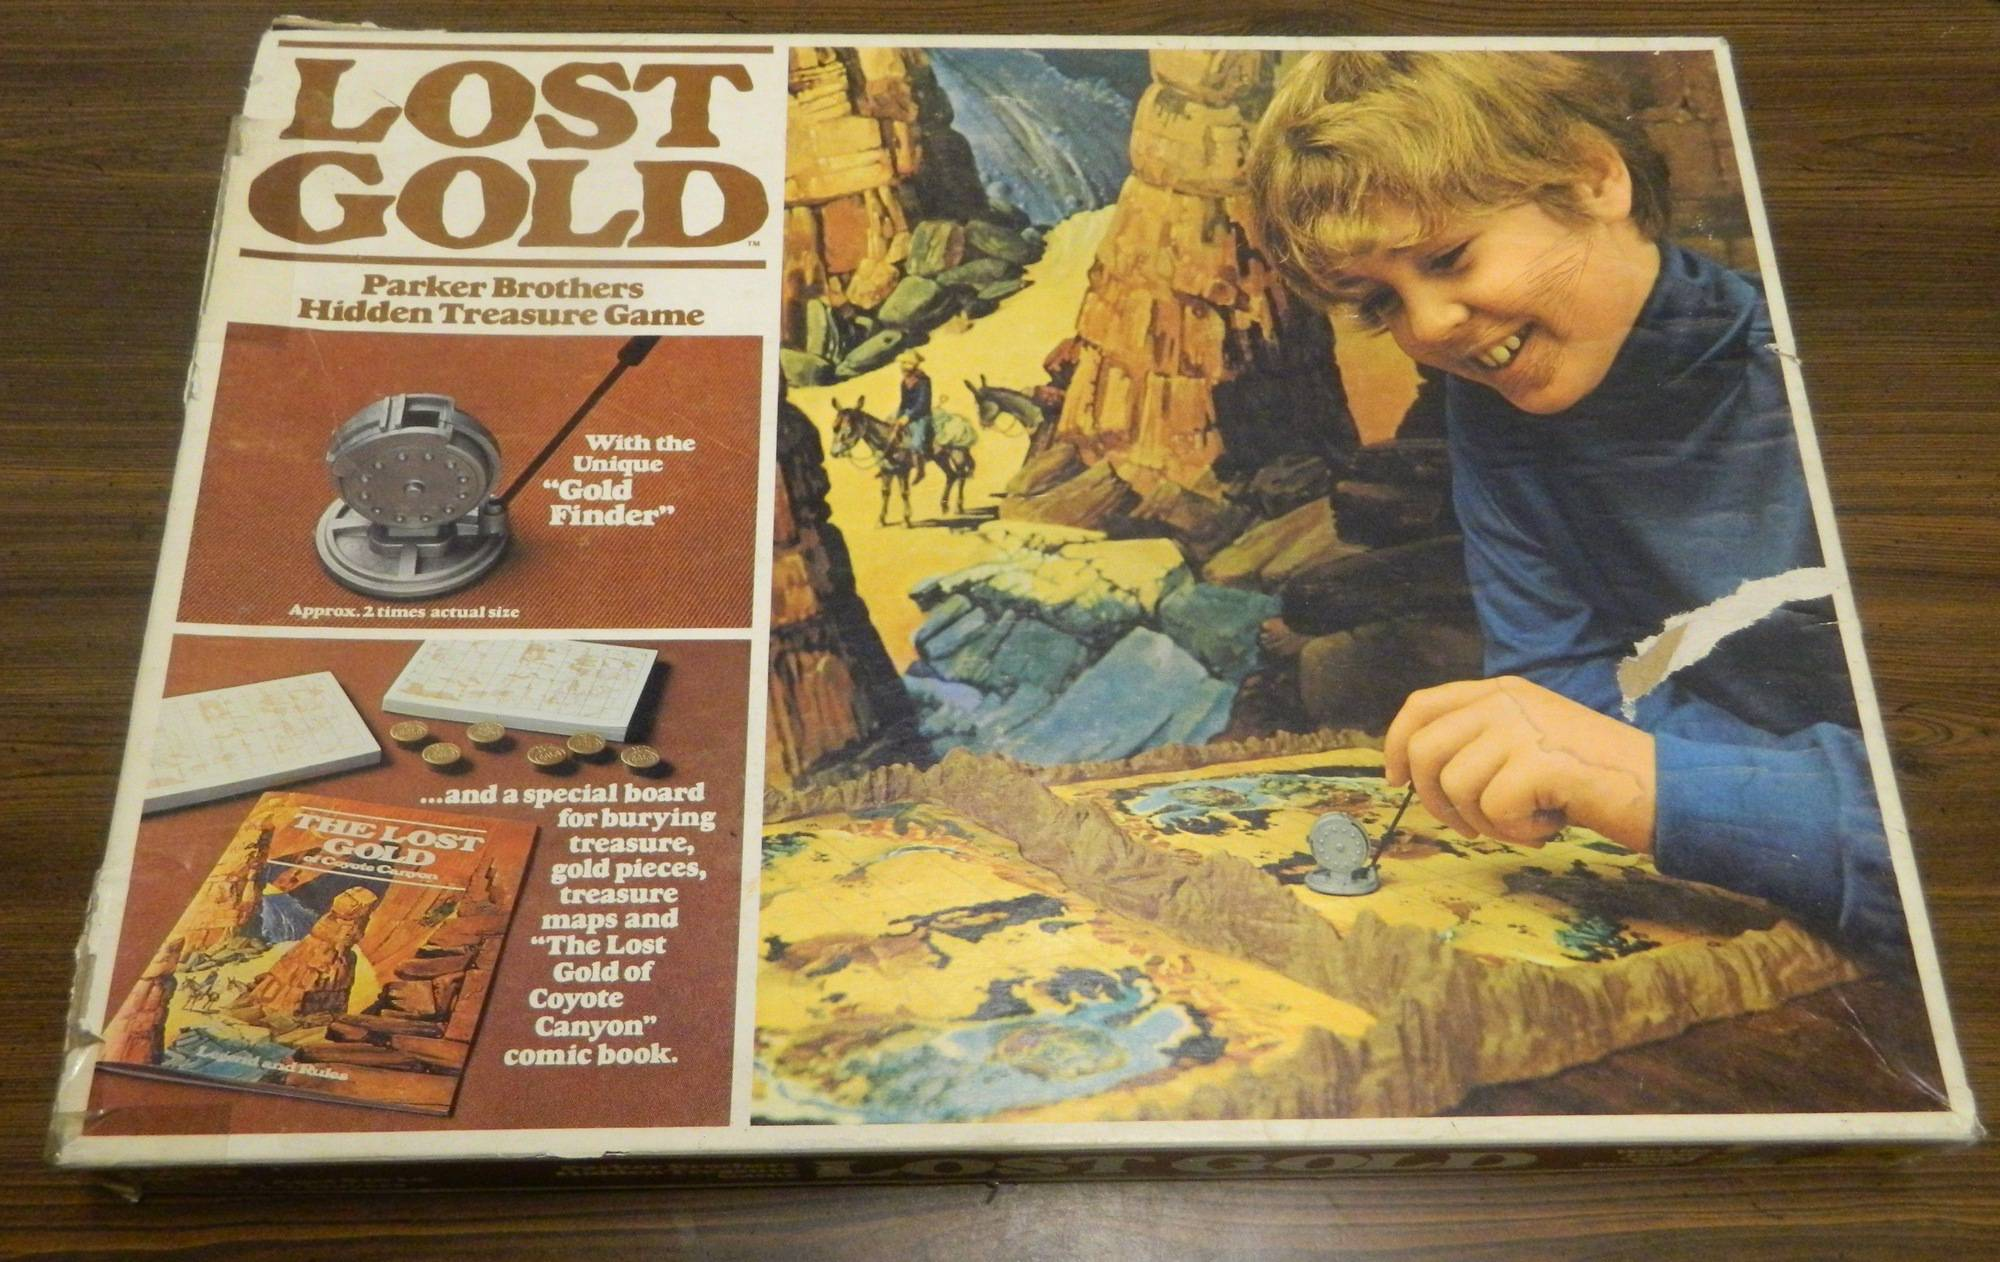 Box for Lost Gold